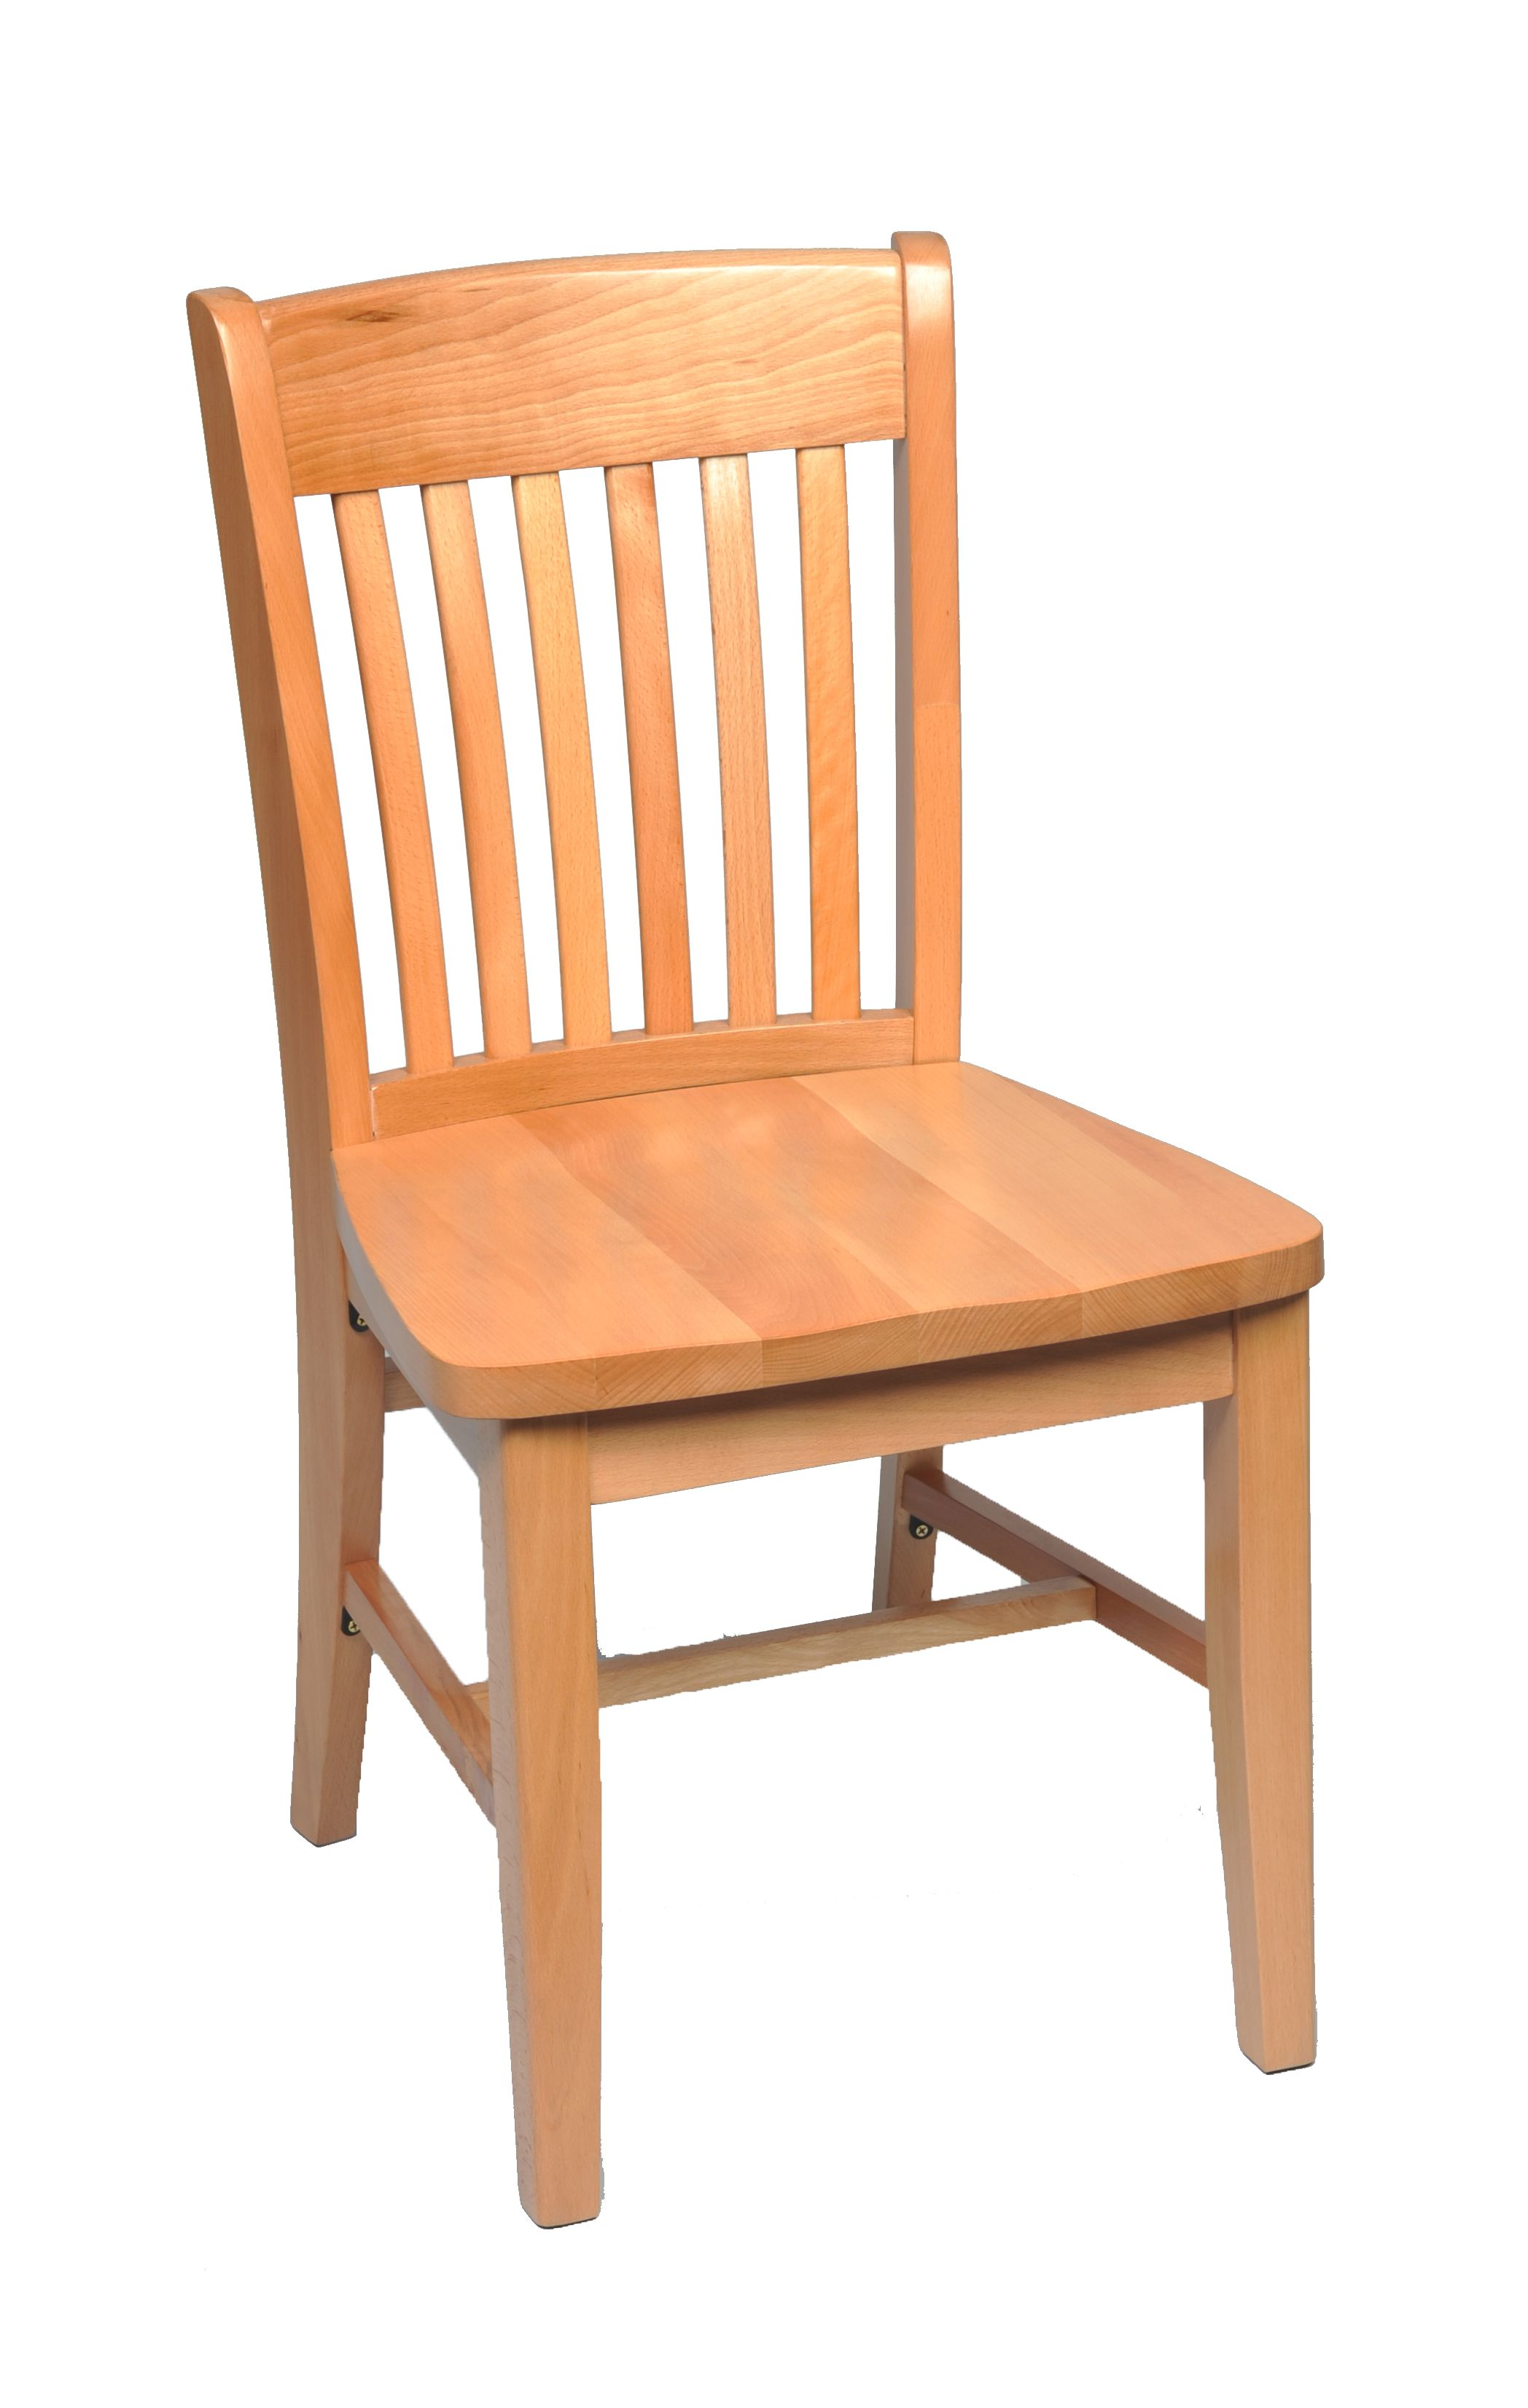 Solid wood dining chair schoolhouse solid wood dining for Dining chair ideas